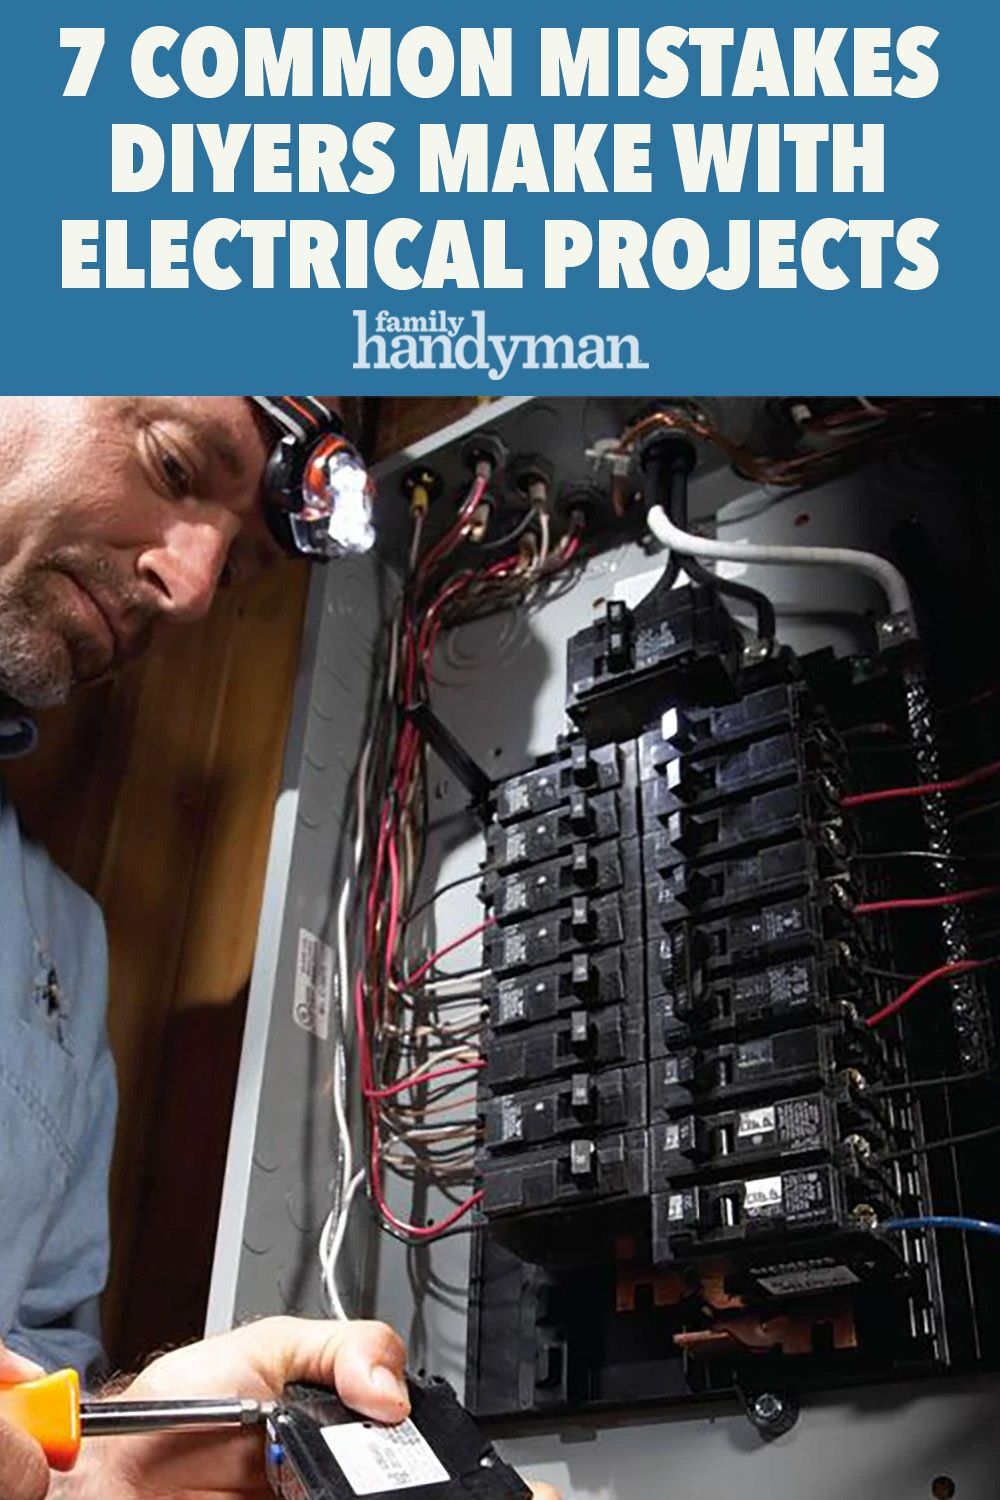 7 Common Mistakes DIYers Make with Electrical Projects in